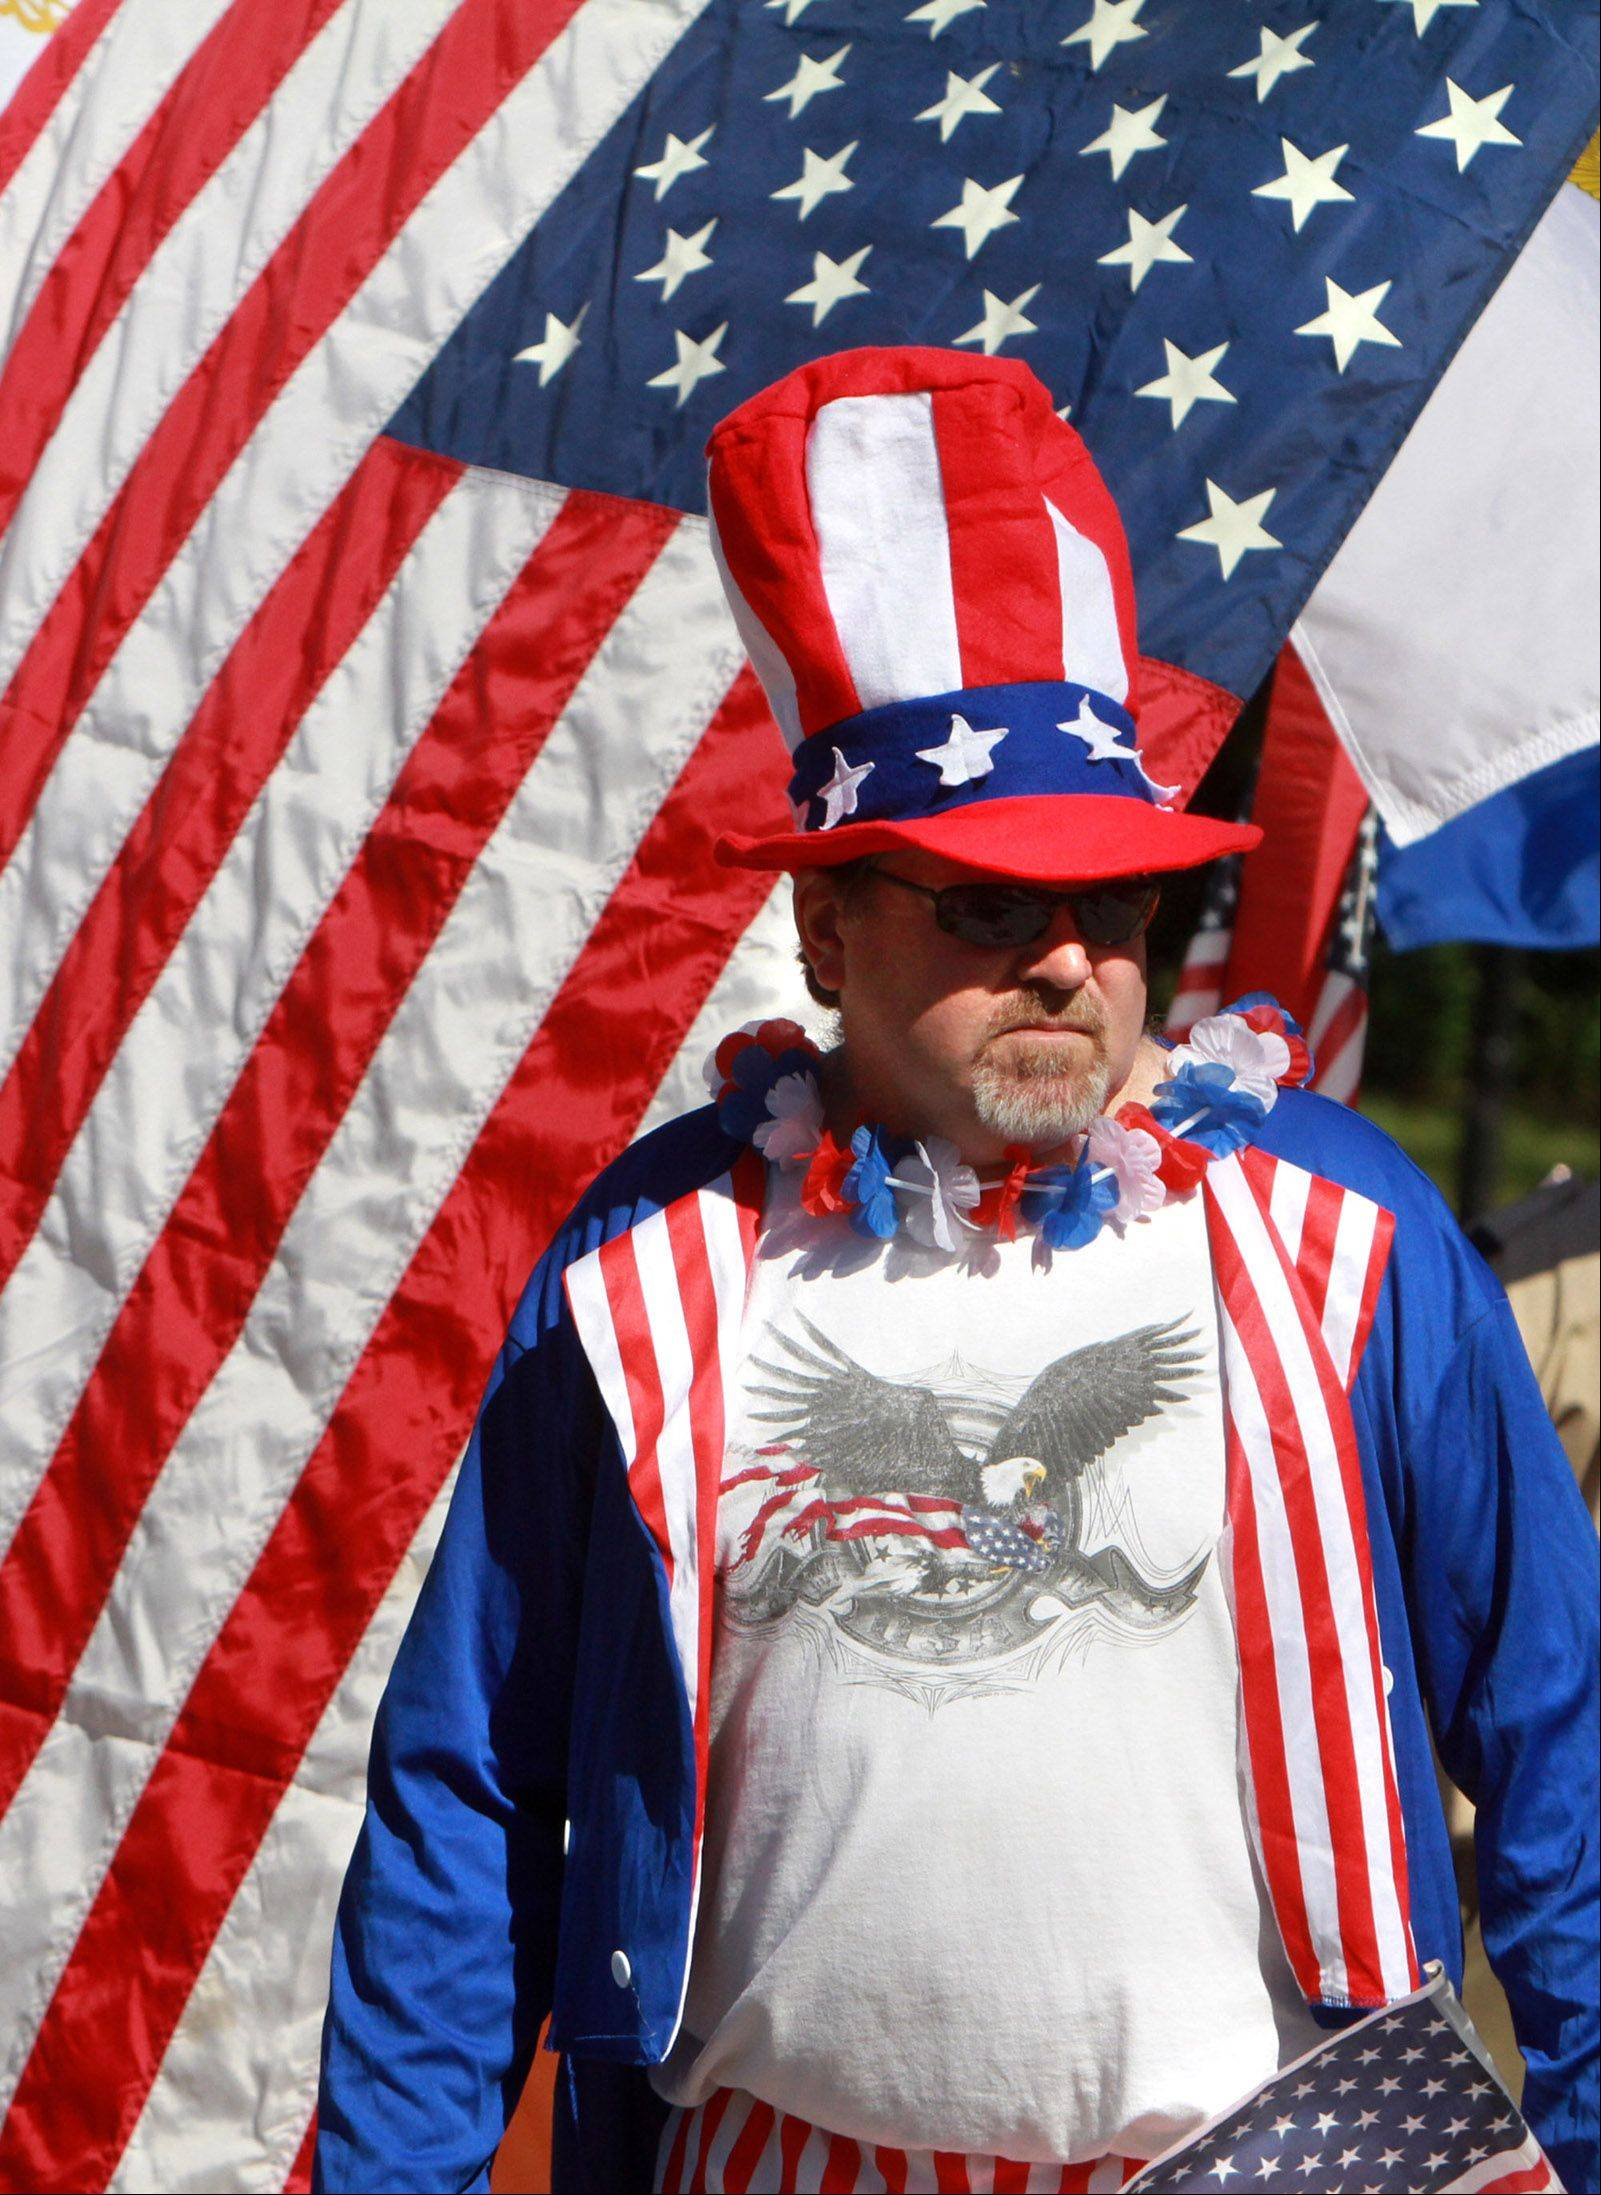 Hoffman Estates resident Doug Wagner portrays Uncle Sam in the Fourth of July parade on Monday.